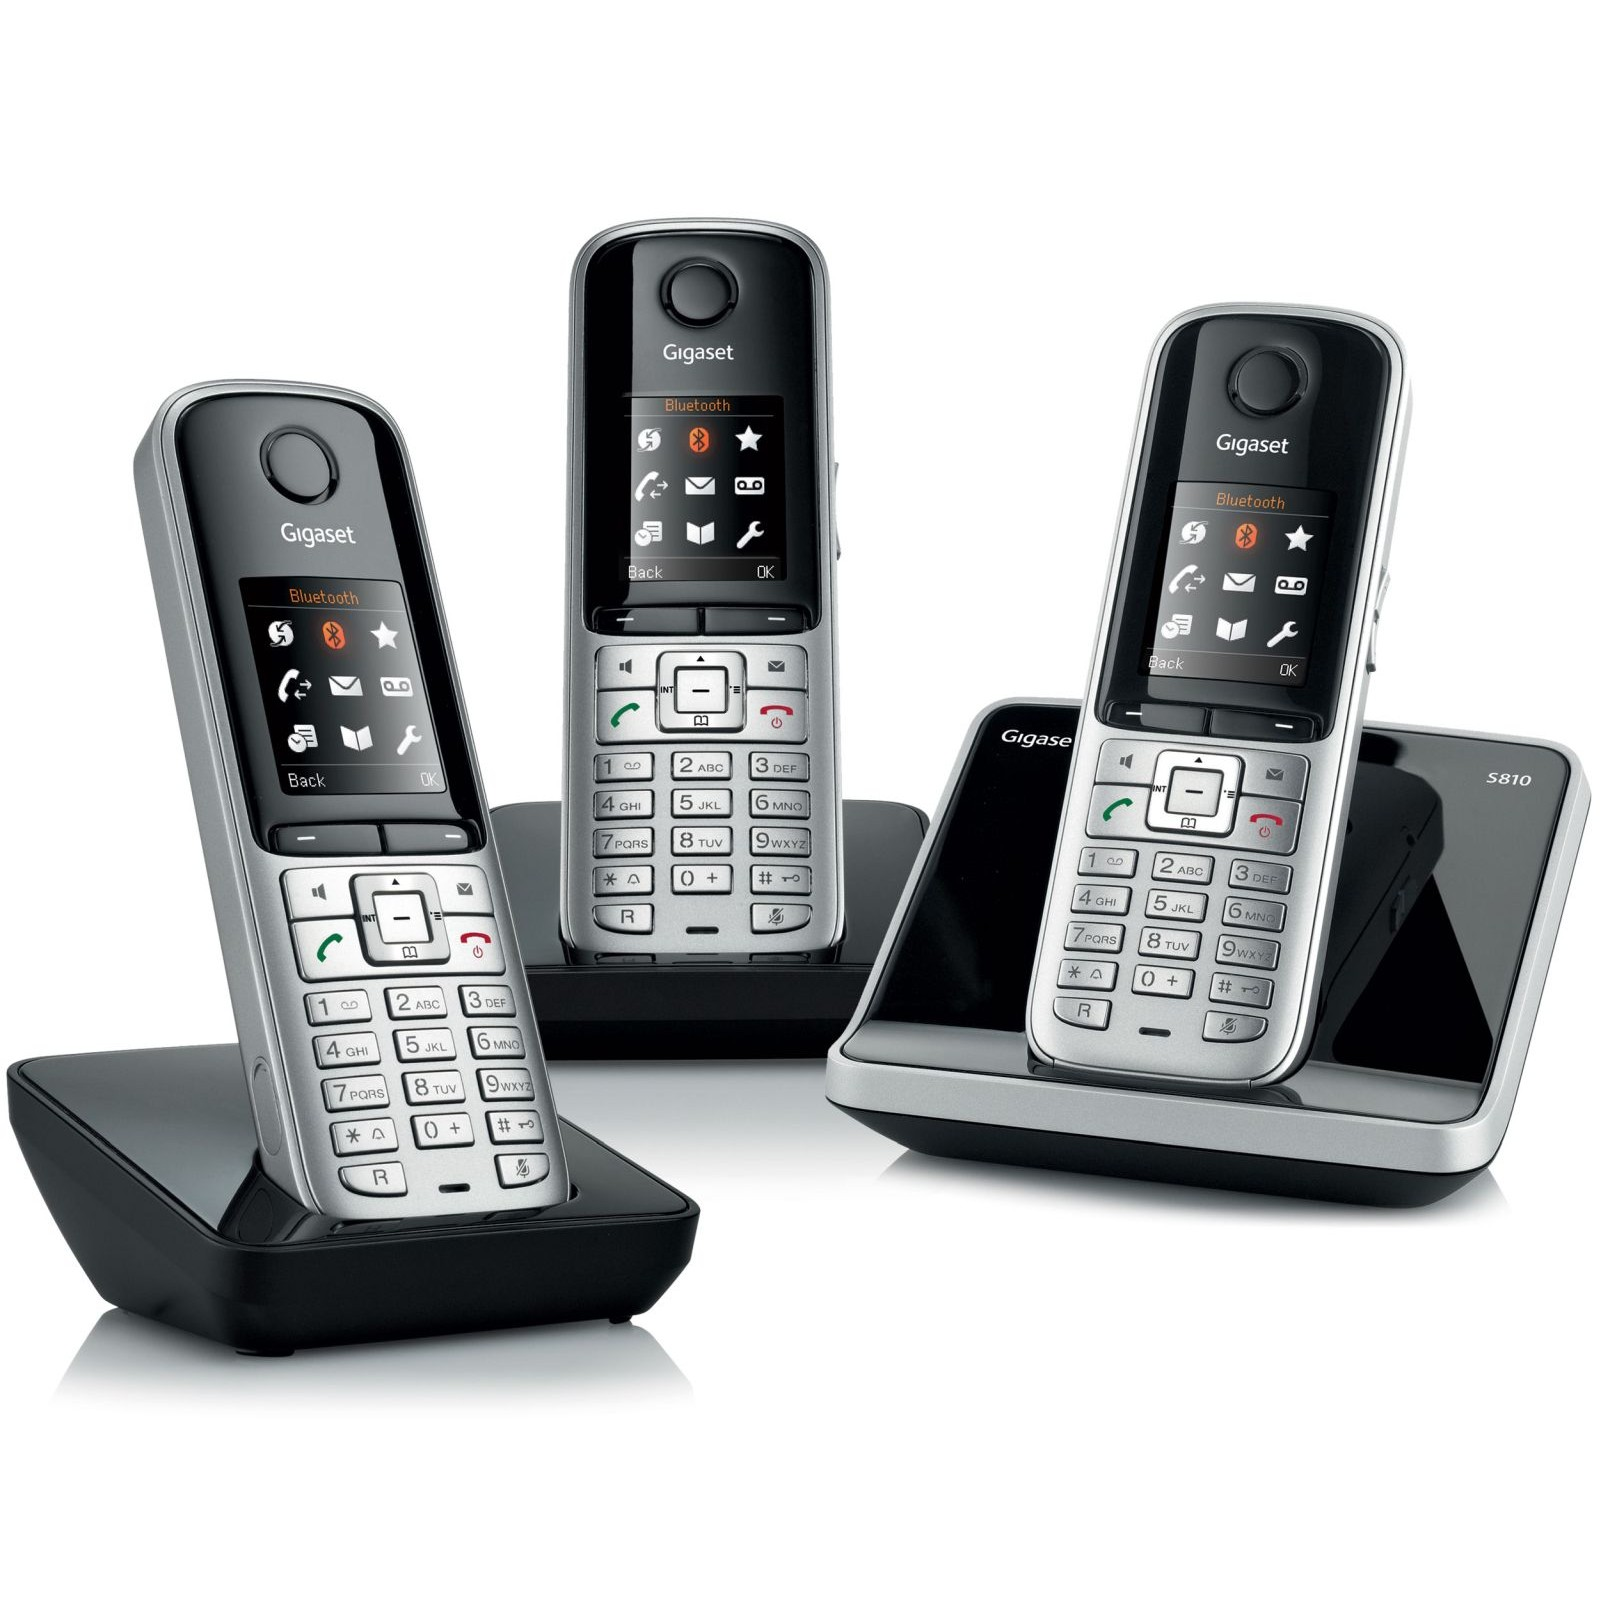 siemens gigaset s810 trio cordless phone without answer machine ligo. Black Bedroom Furniture Sets. Home Design Ideas